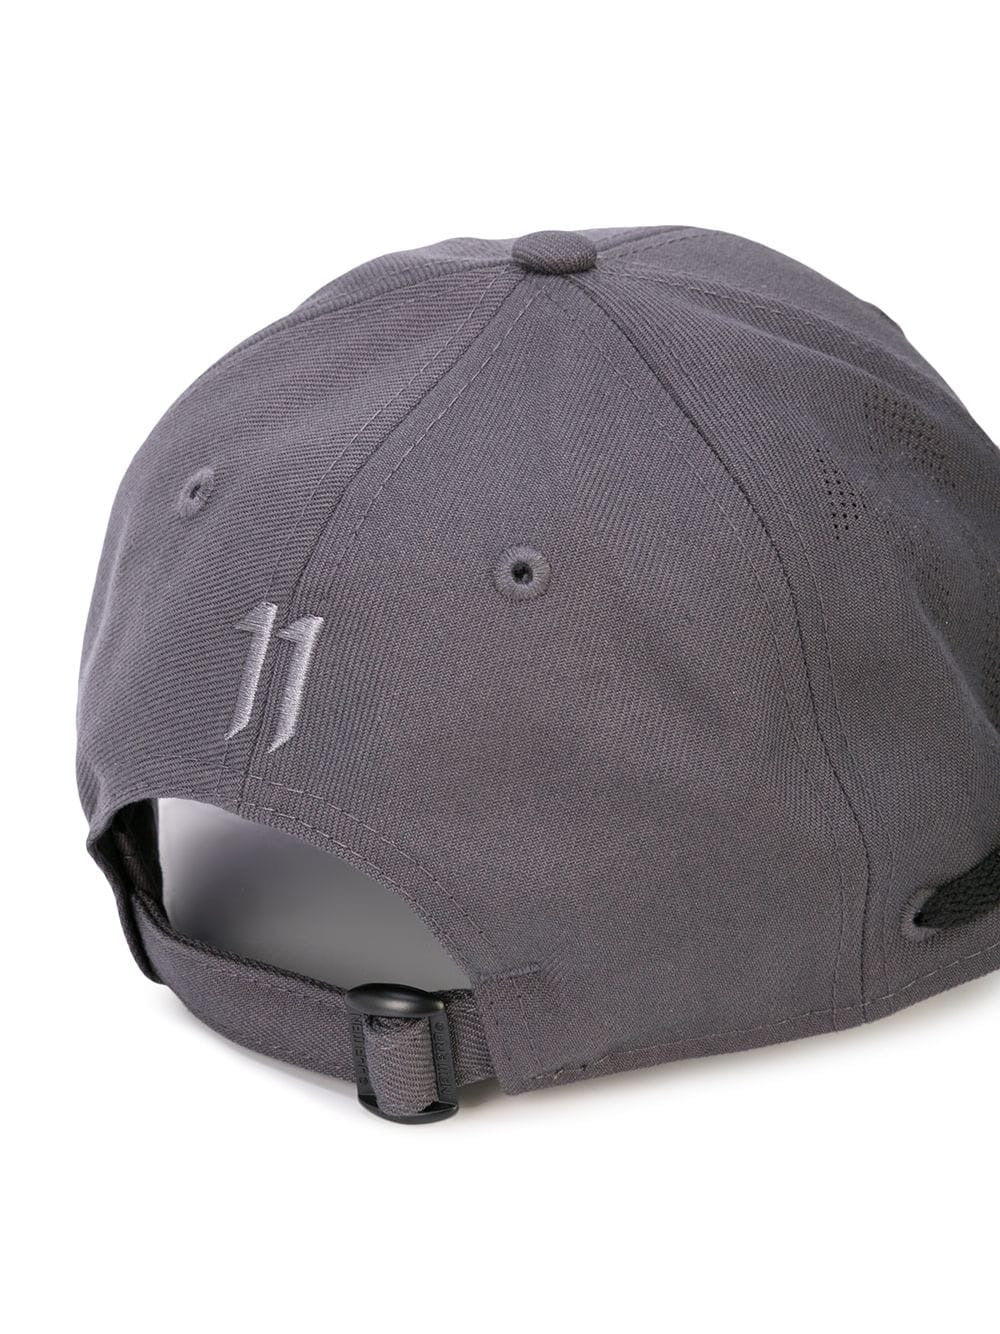 9FORTY DARK GREY MESH LOGO HAT